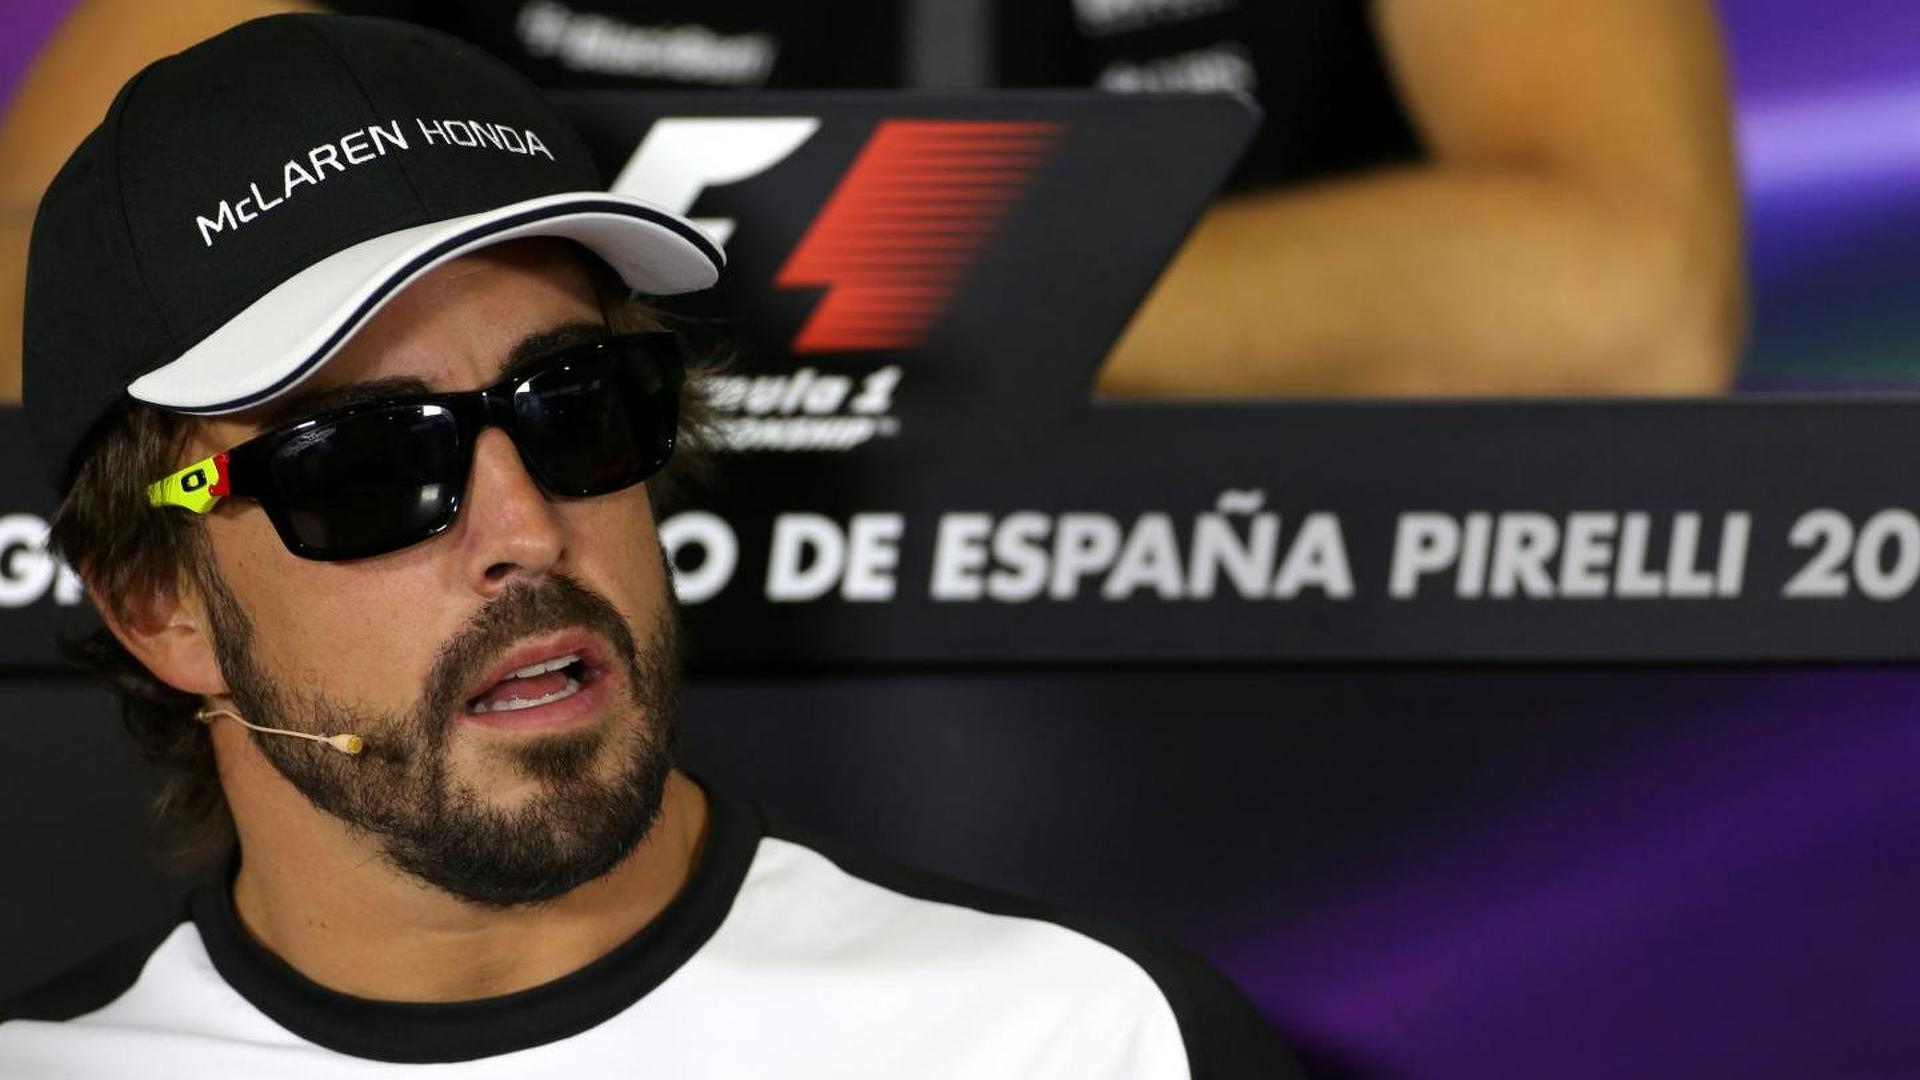 Alonso hits back after 'dark and moody' jibe